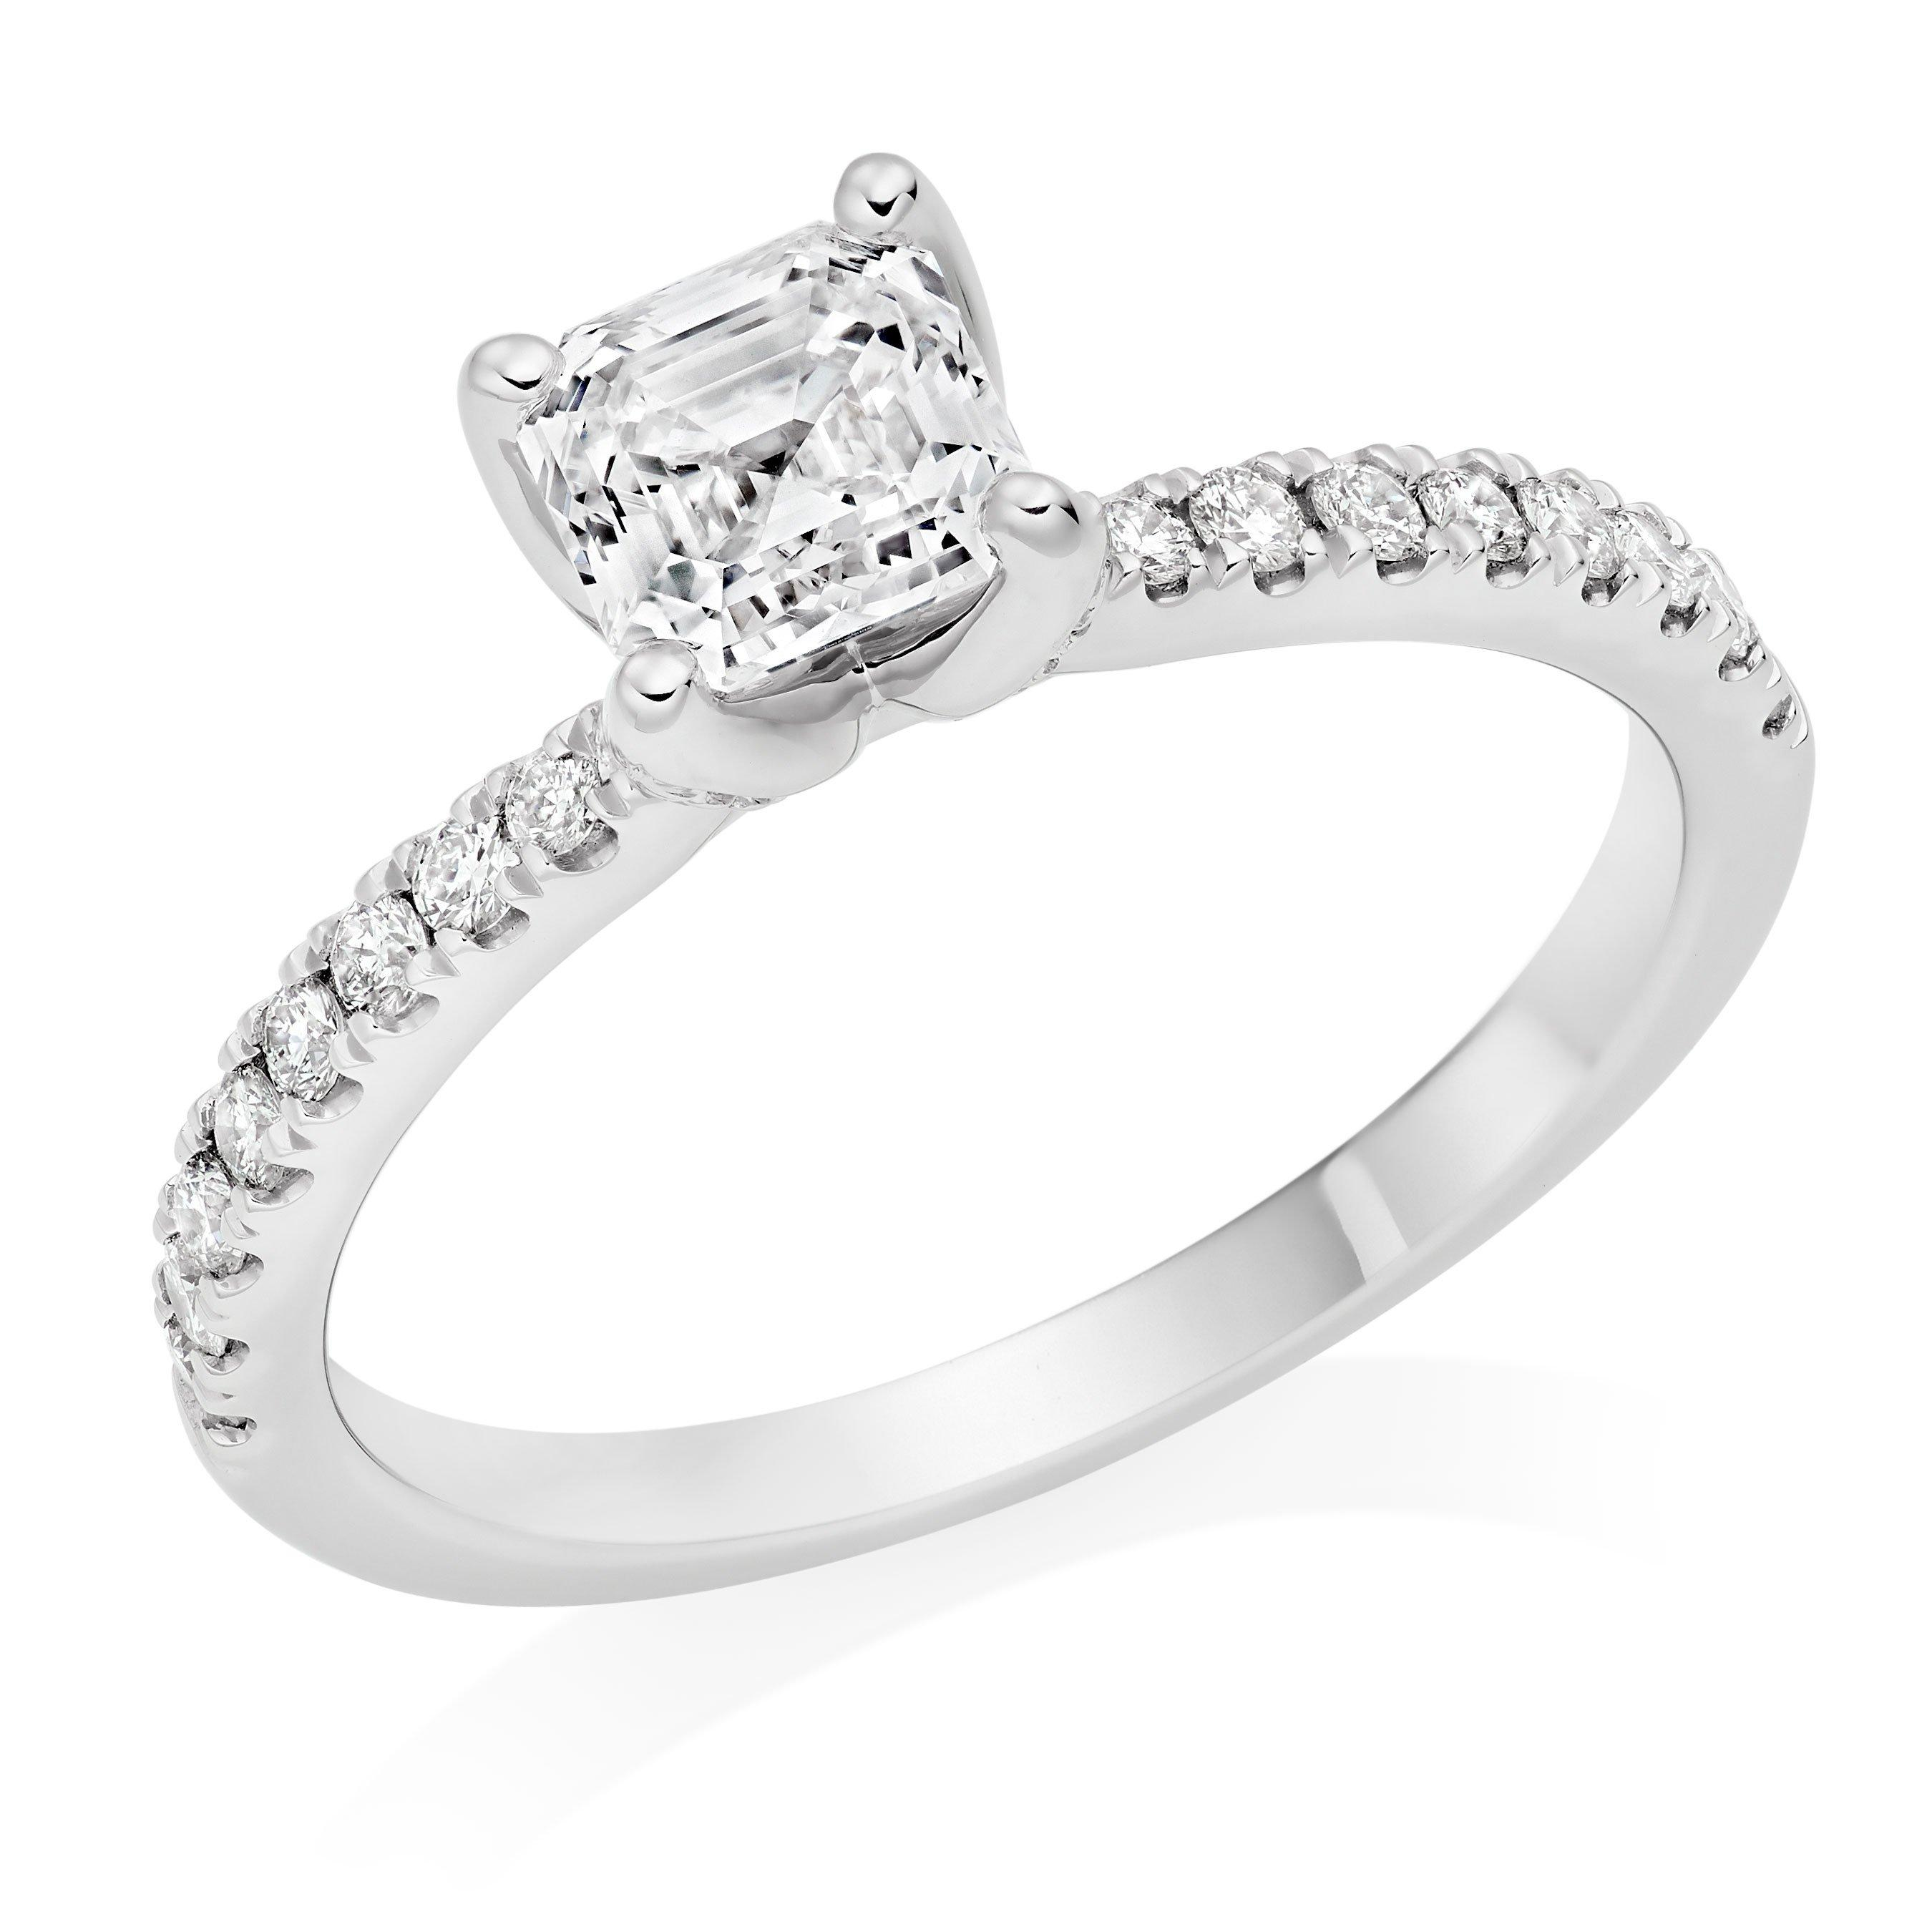 Royal Asscher Caroline Platinum Diamond Royal Asscher Cut Solitaire Ring